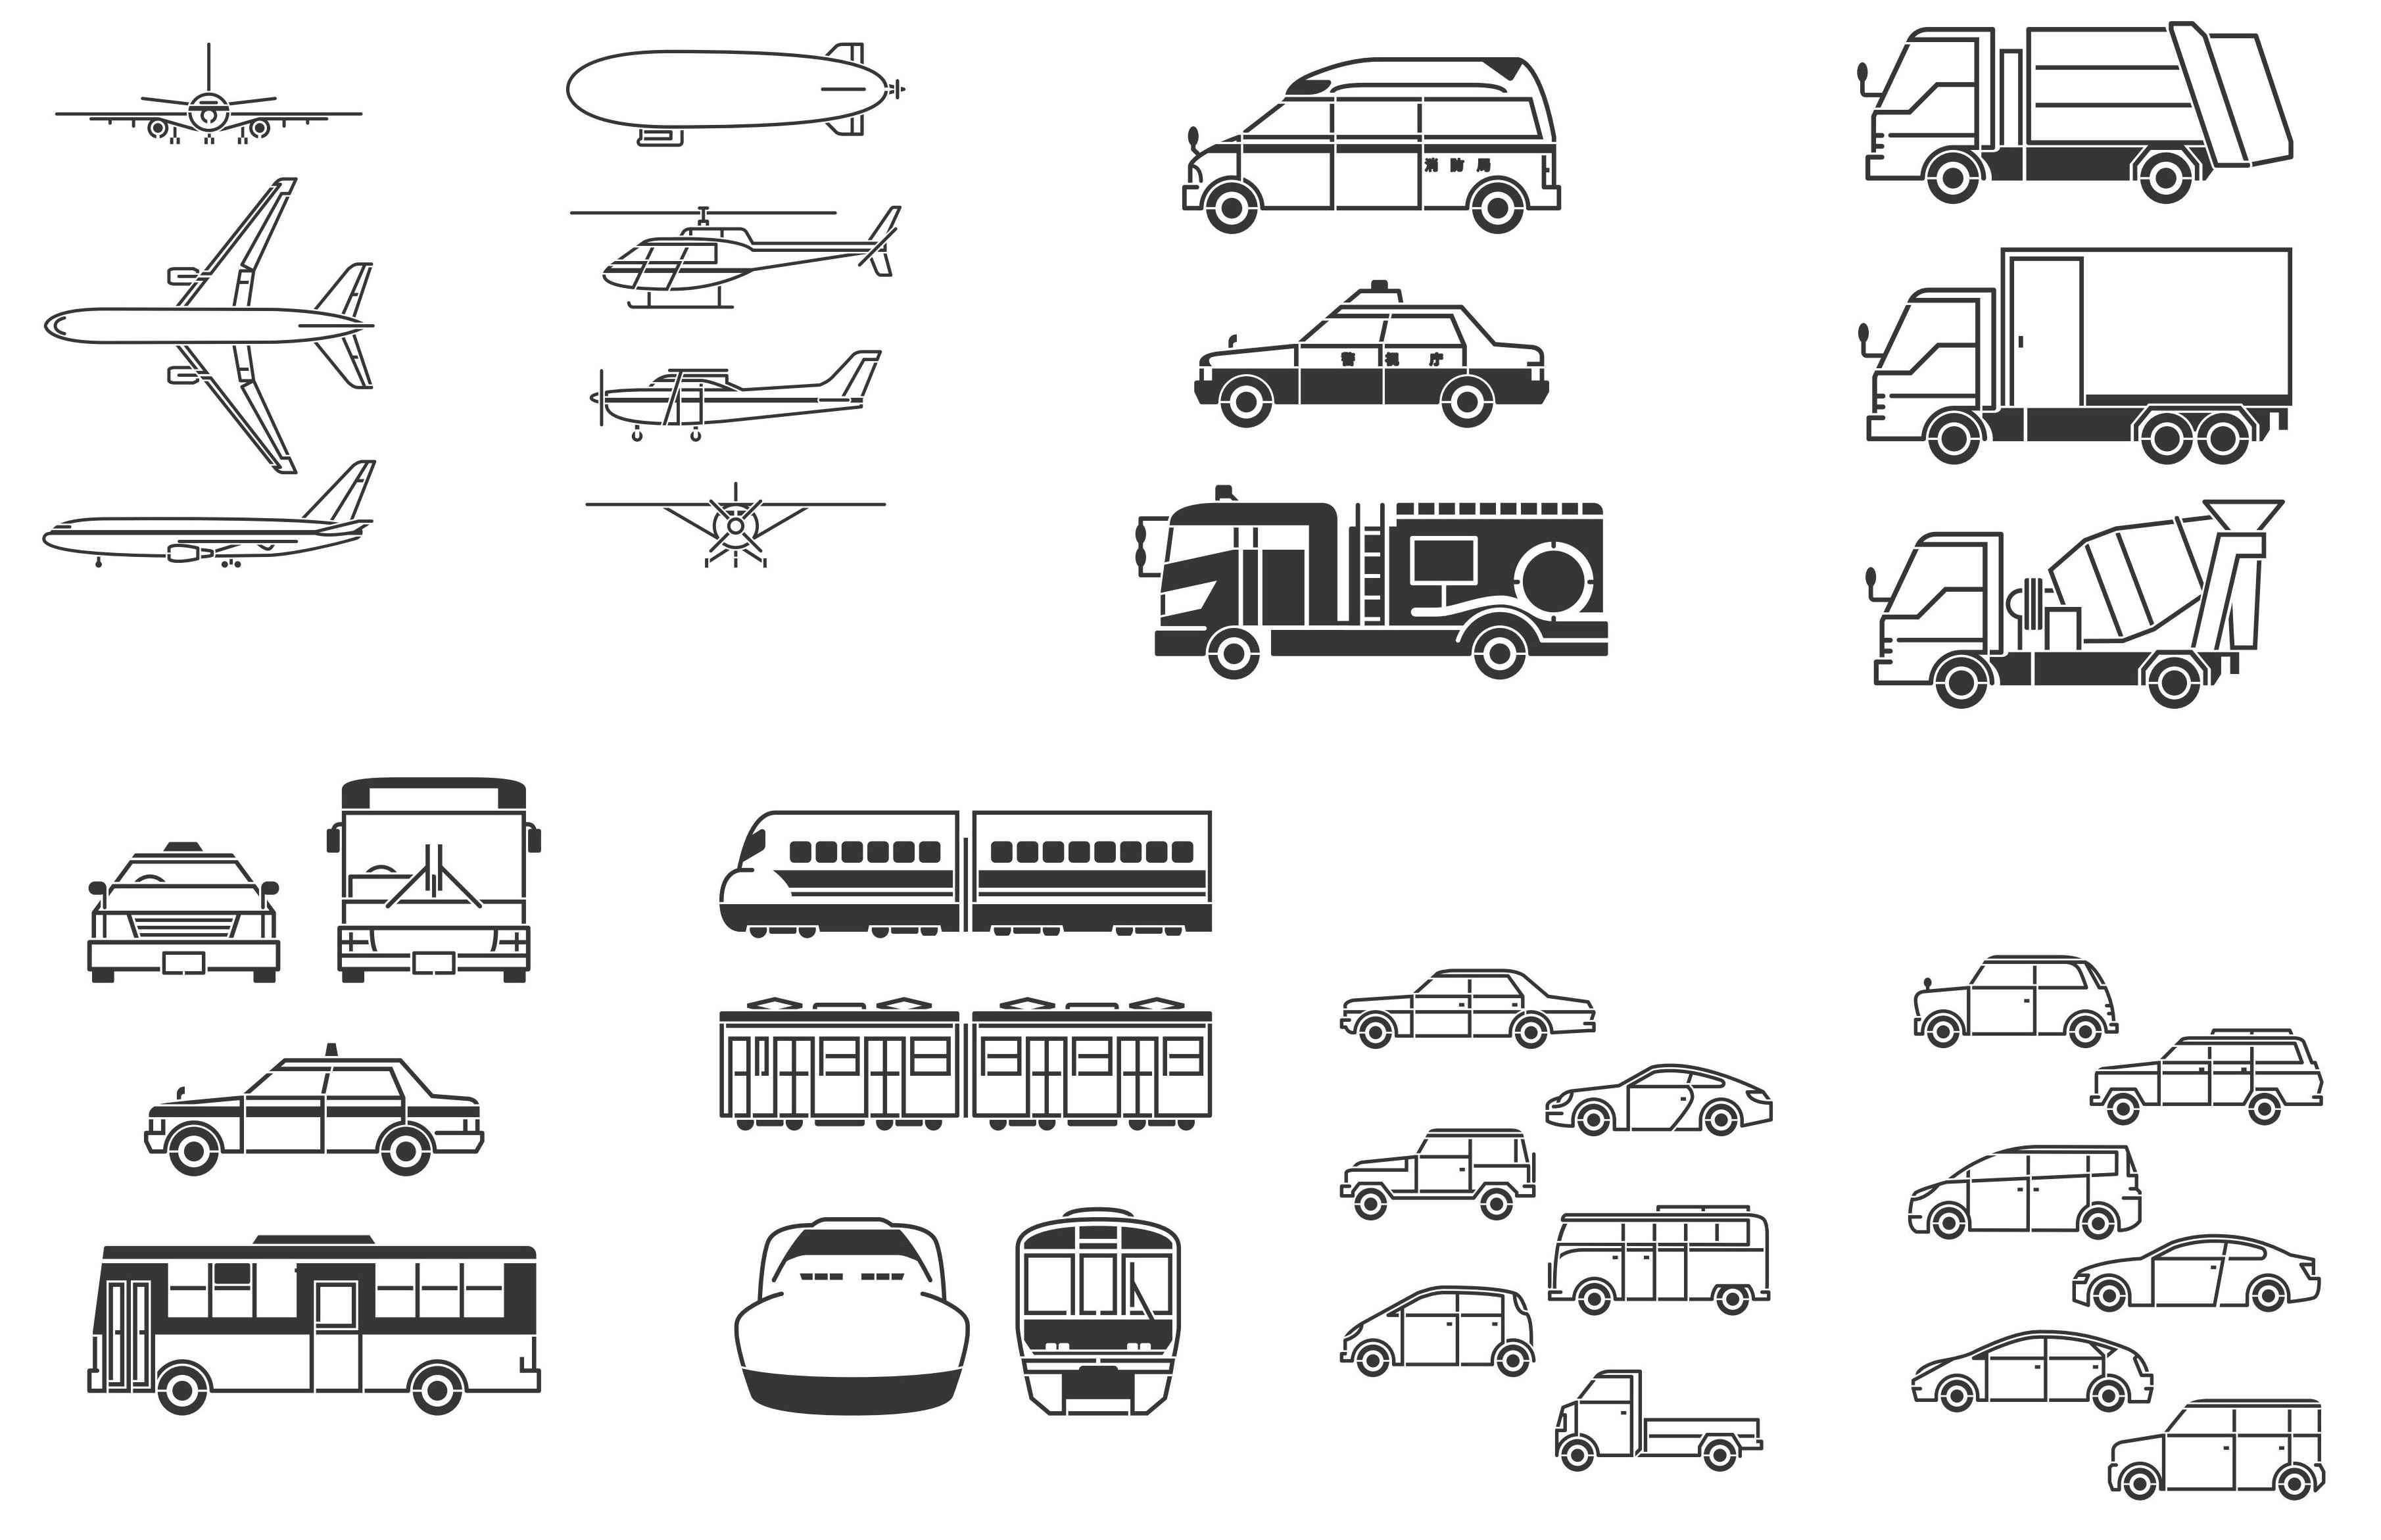 Transport, Plane, Helicopter, Car, Truck, Train, Bus Silhouettes png